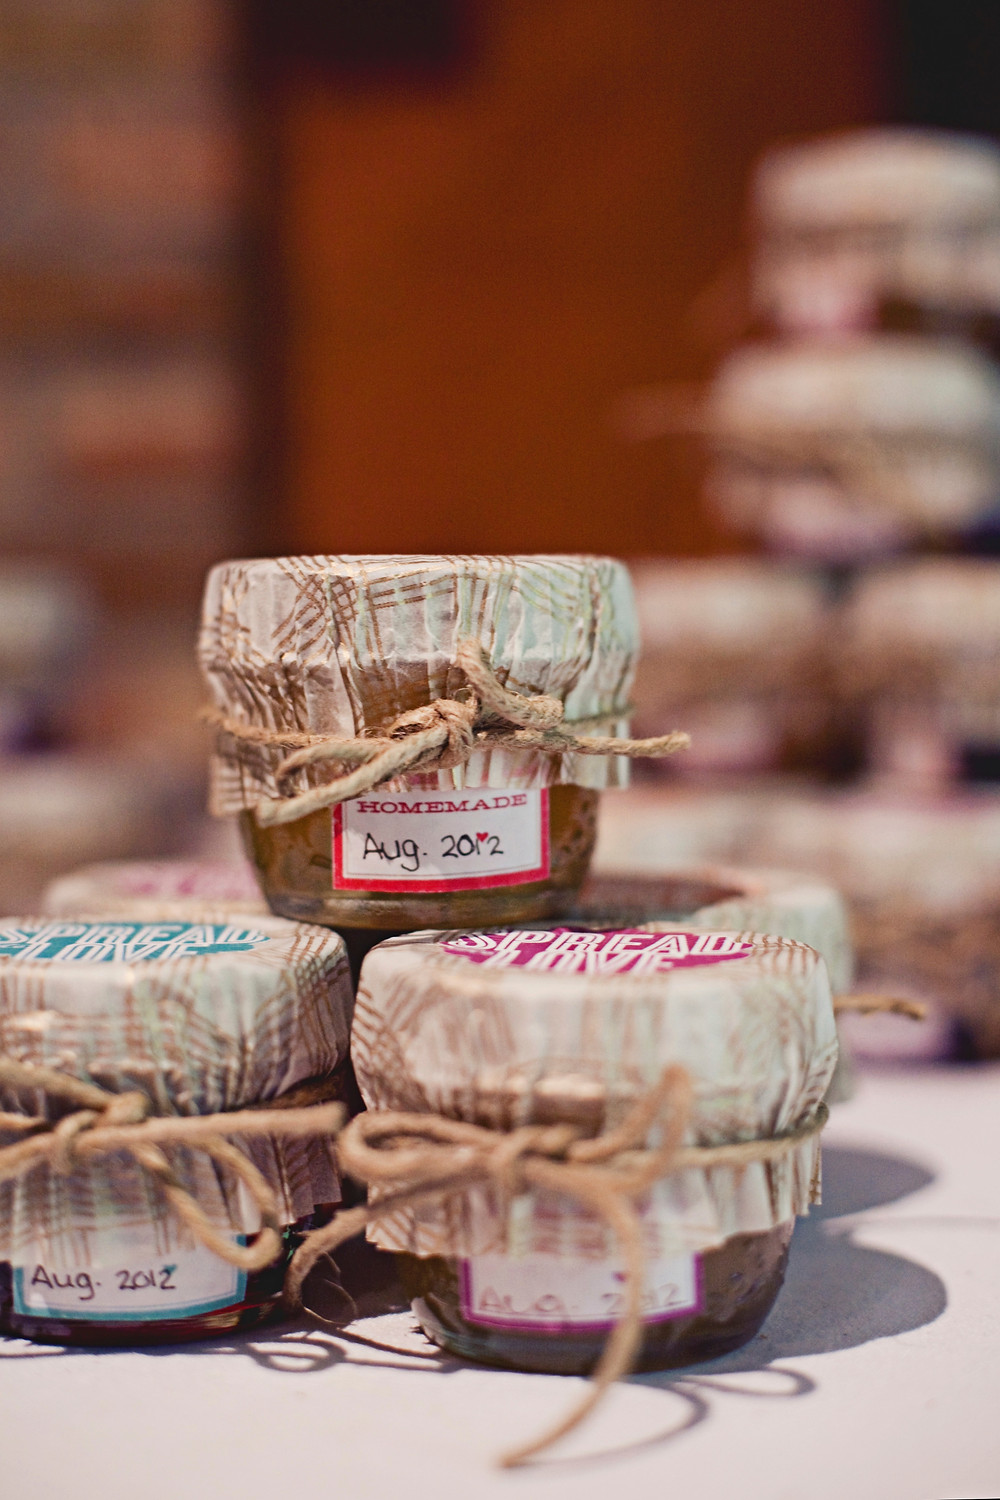 Homemade jam jars tied with twine are stacked as wedding favours at a rustic Italian inspired wedding.